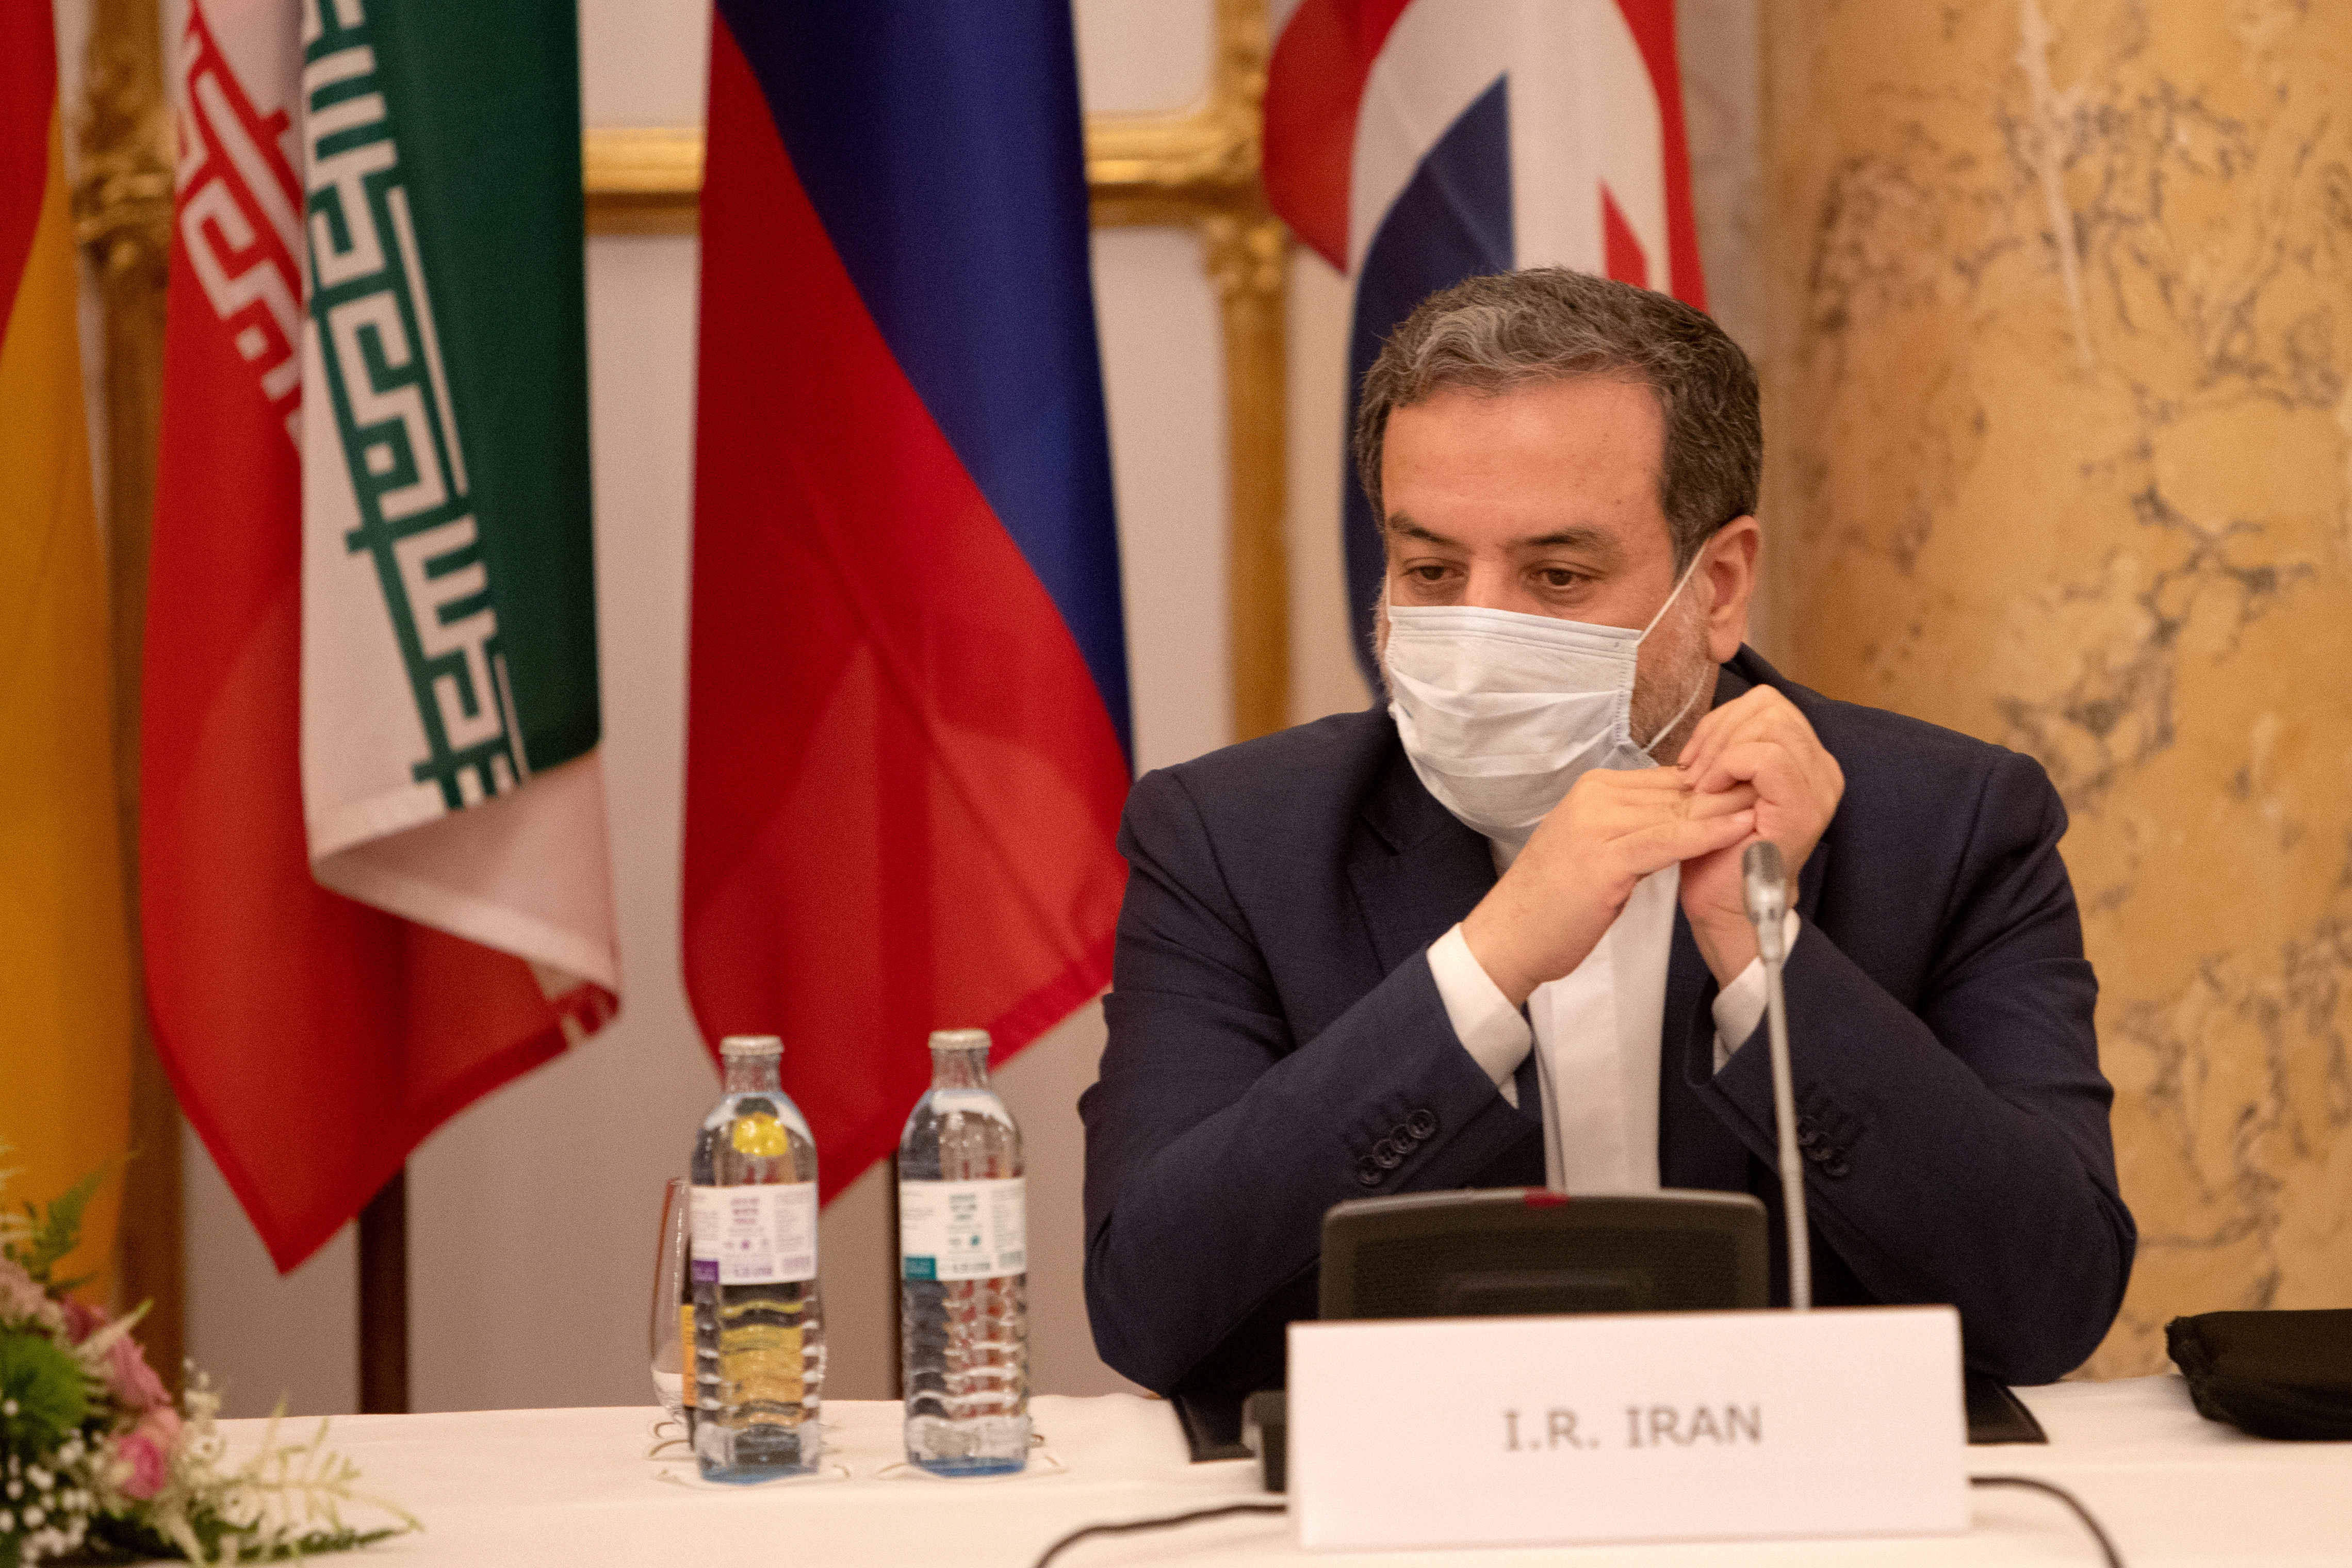 Iran's top nuclear negotiator, Abbas Araqchi, attends a meeting of the JCPOA Joint Commission in Vienna, Austria, September 1, 2020. European Commission EbS - EEAS/Handout via REUTERS/File Photo